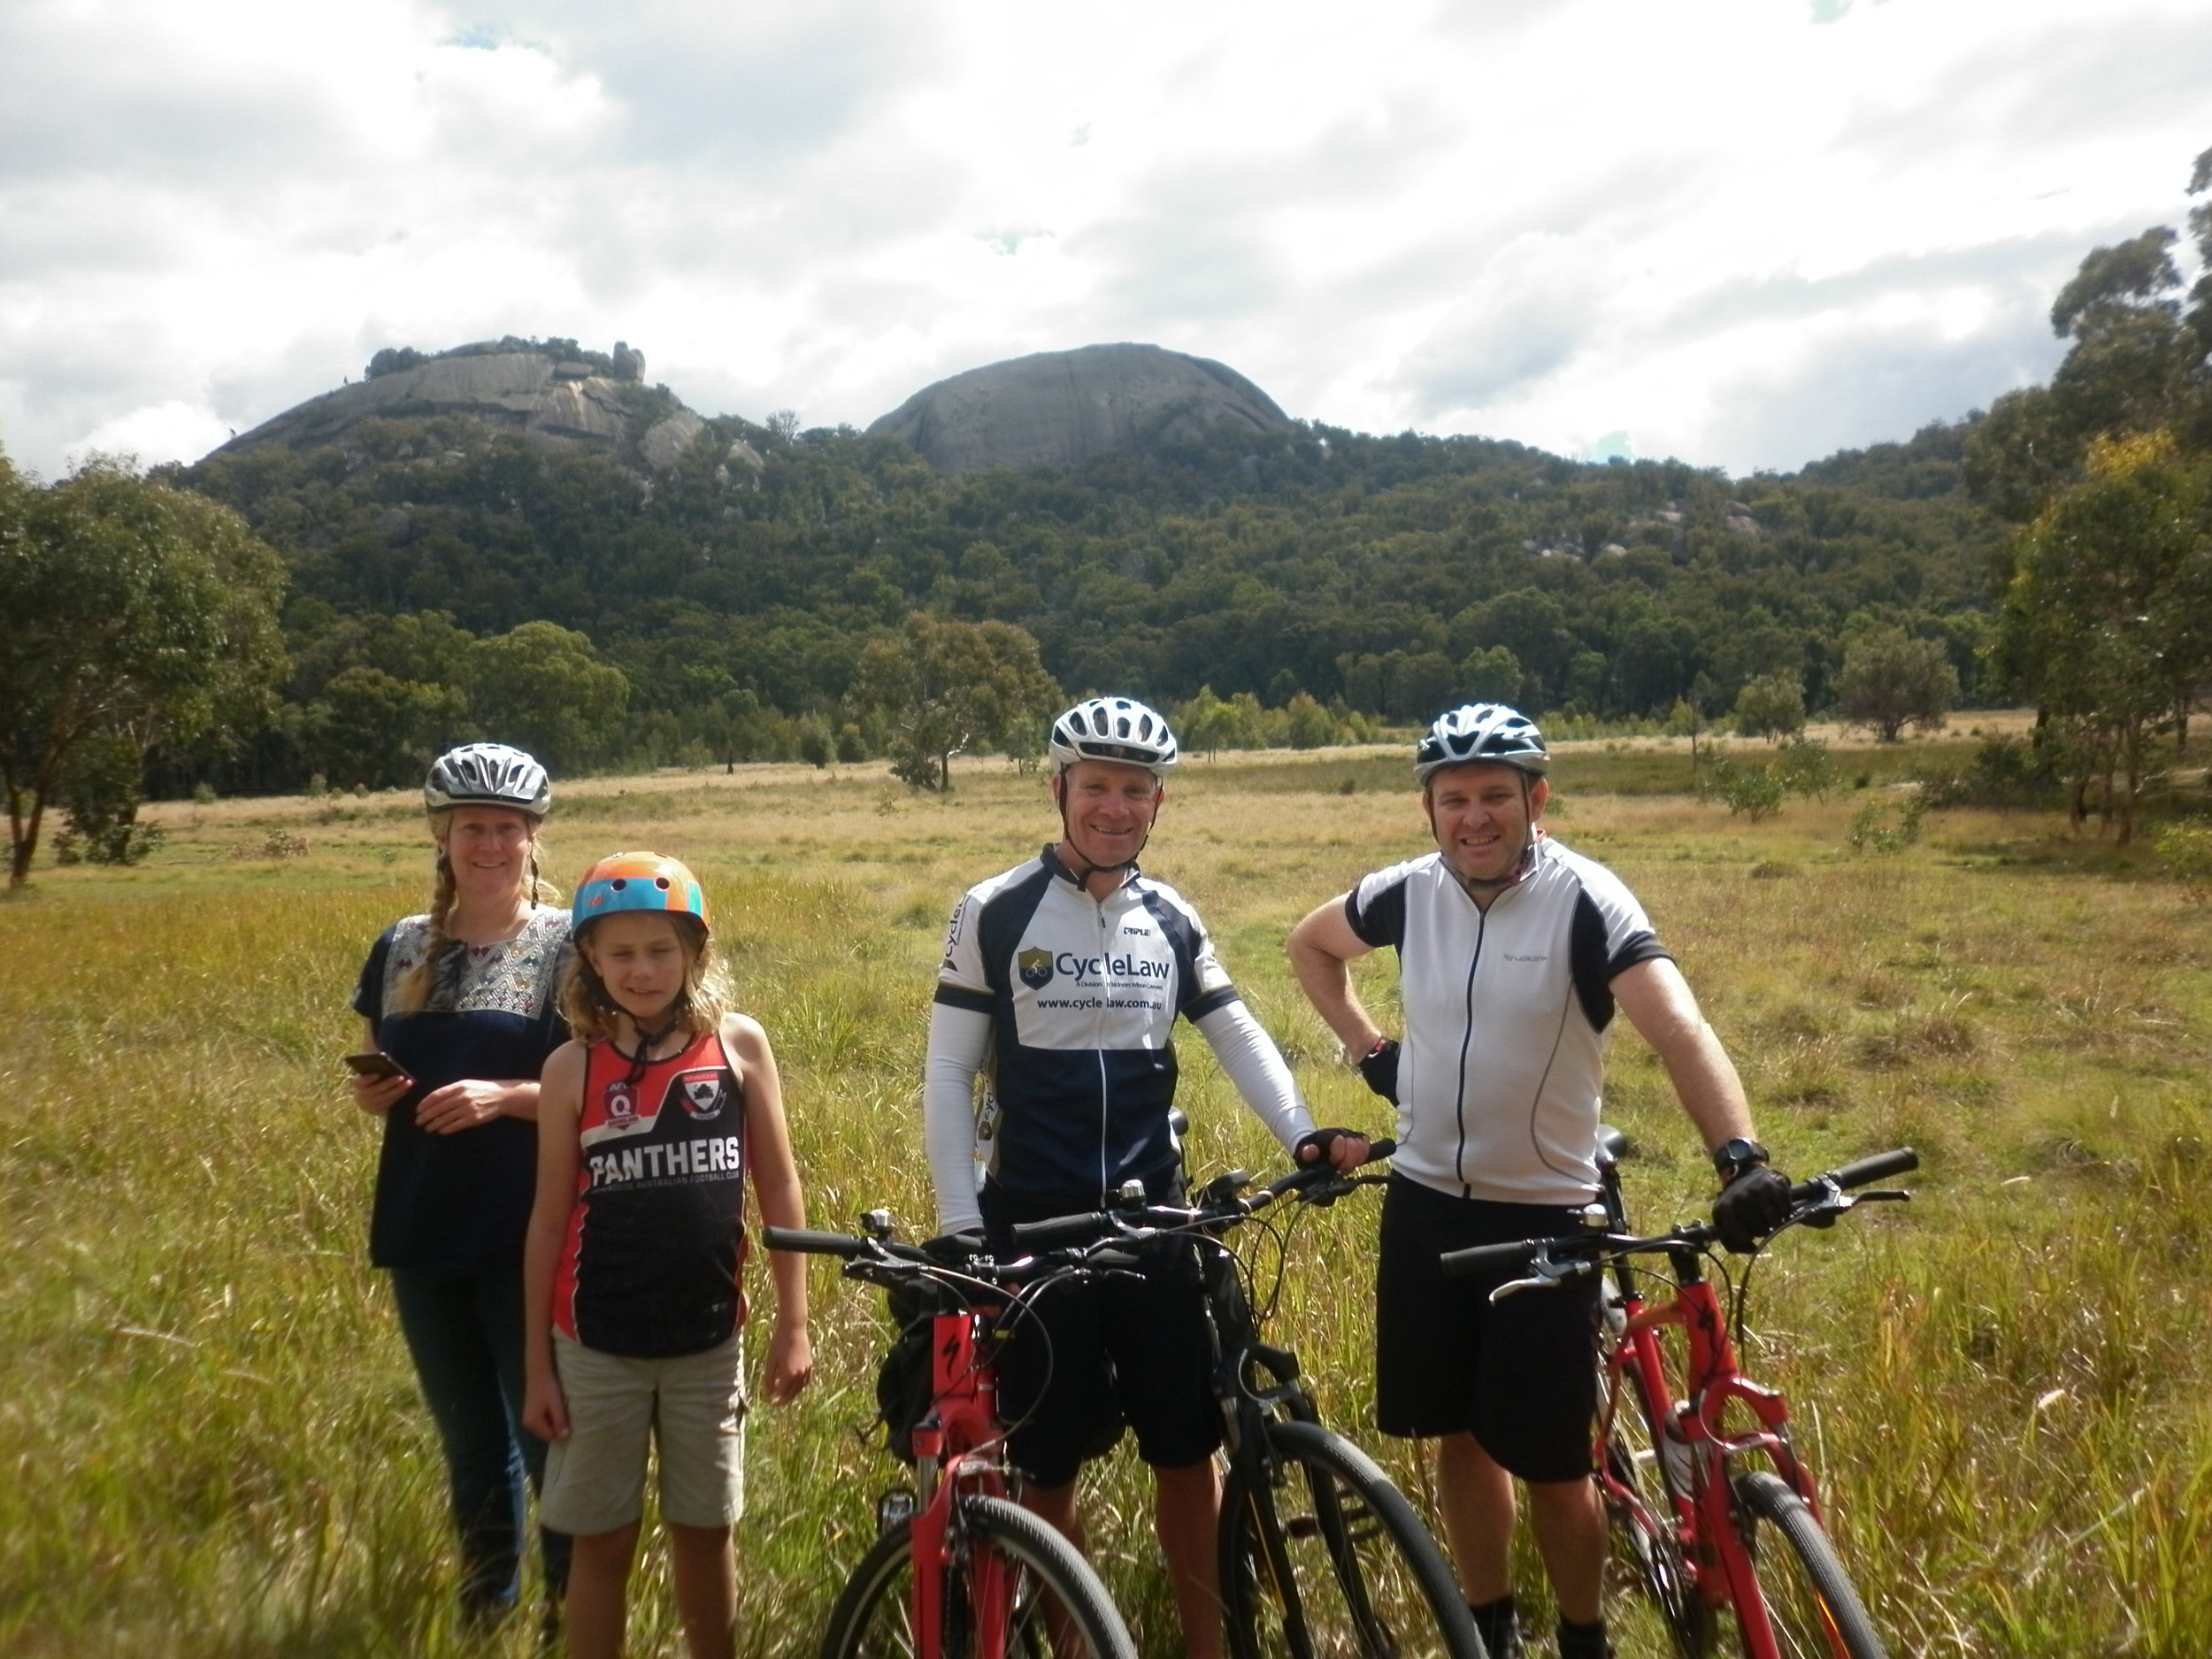 Bike & Hike - for an active day out